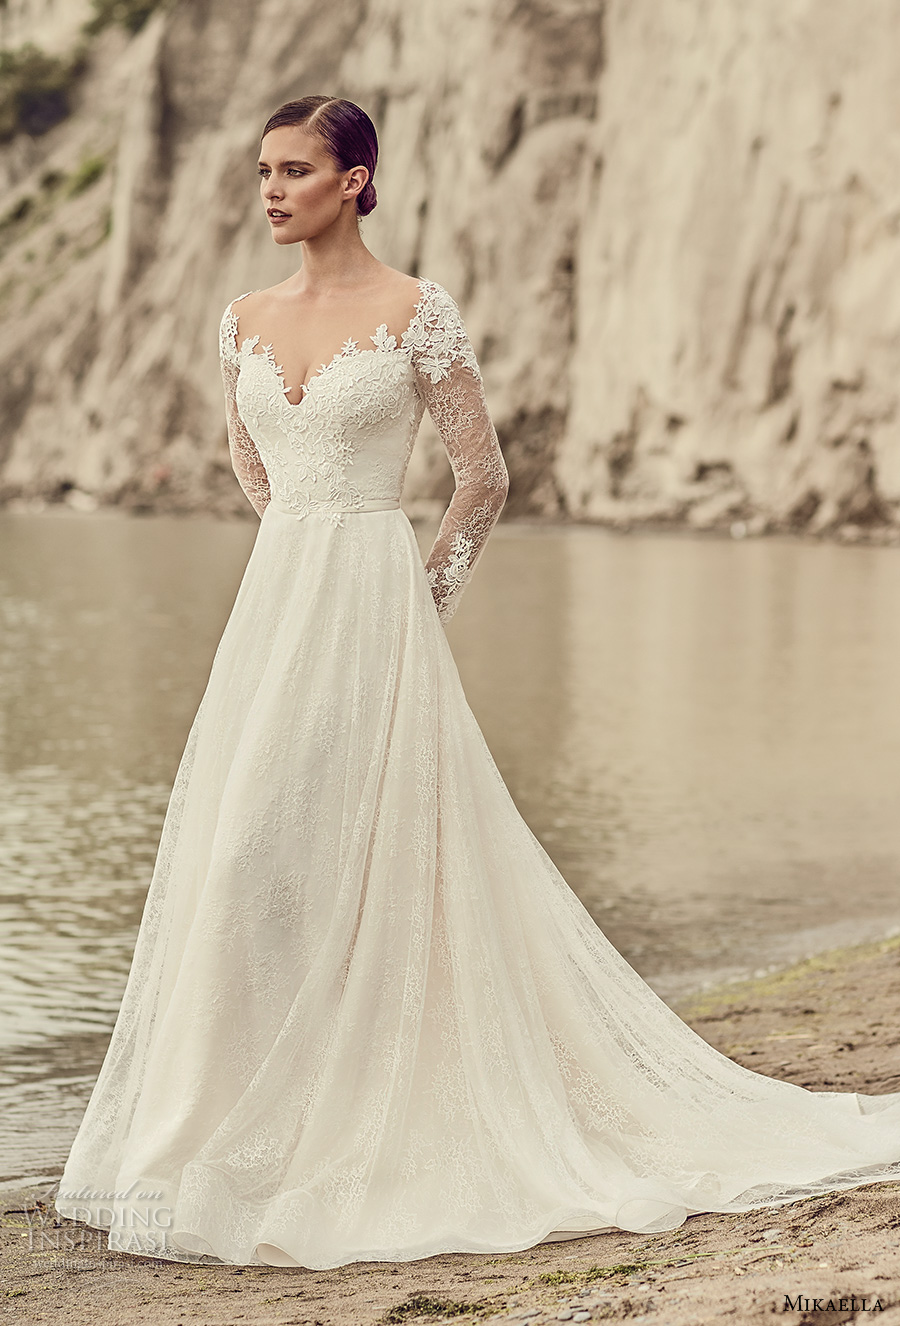 mikaella spring 2017 bridal long sleeves sweetheart neckline heavily embellihsed bodice romantic elegant a line wedding dress open low back chapel train (2118) mv